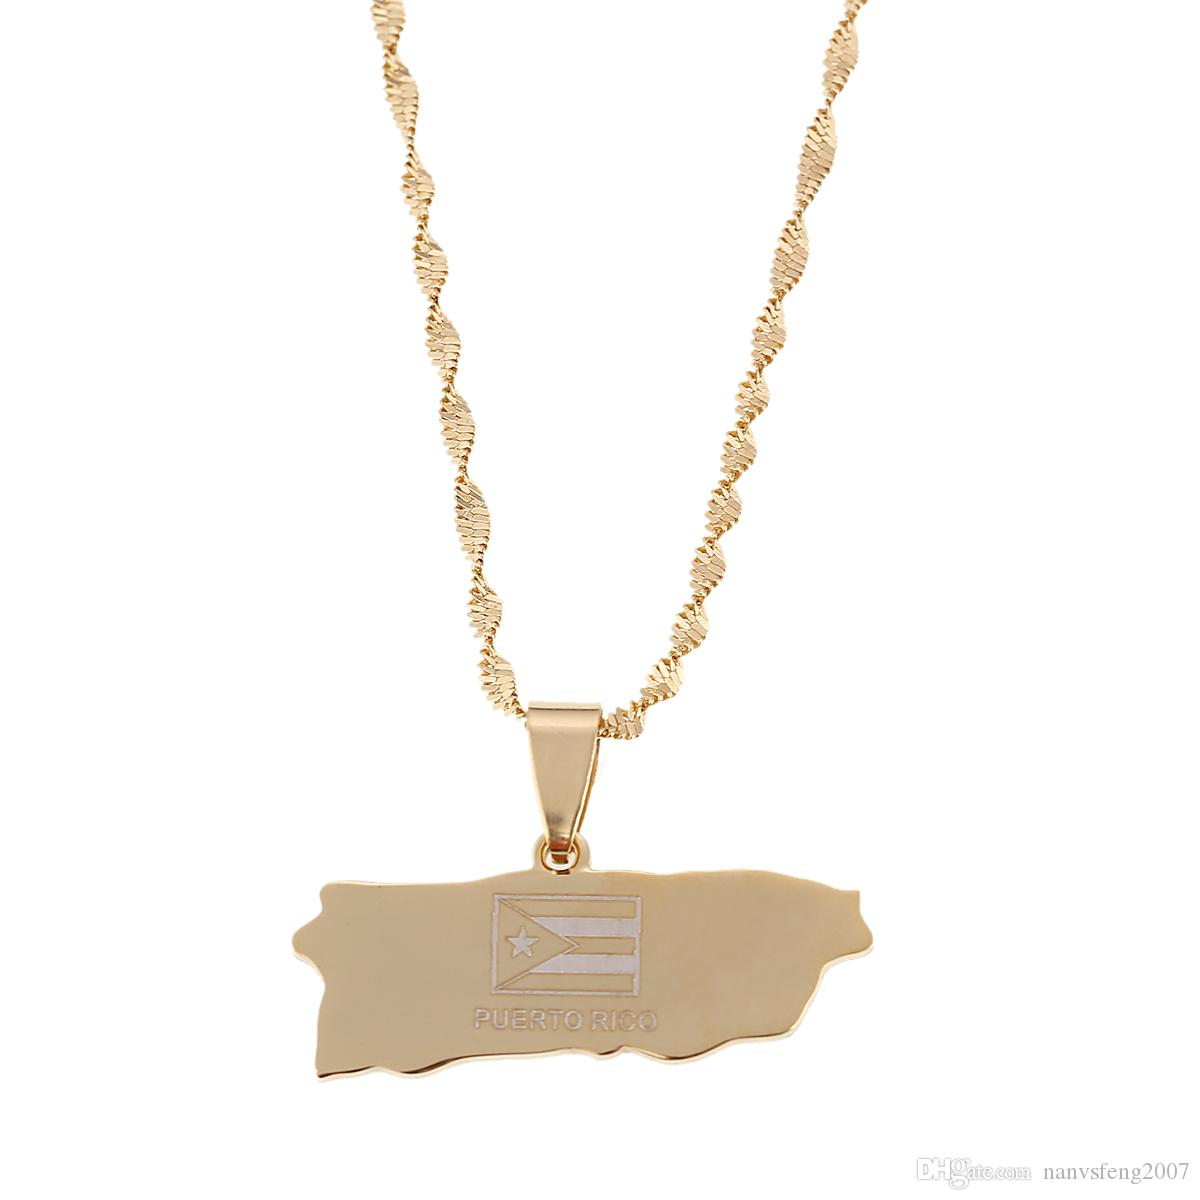 Gold Puerto Rico Pendant Necklaces Jewellery Stainless Steel Puerto Rican Map Jewelry